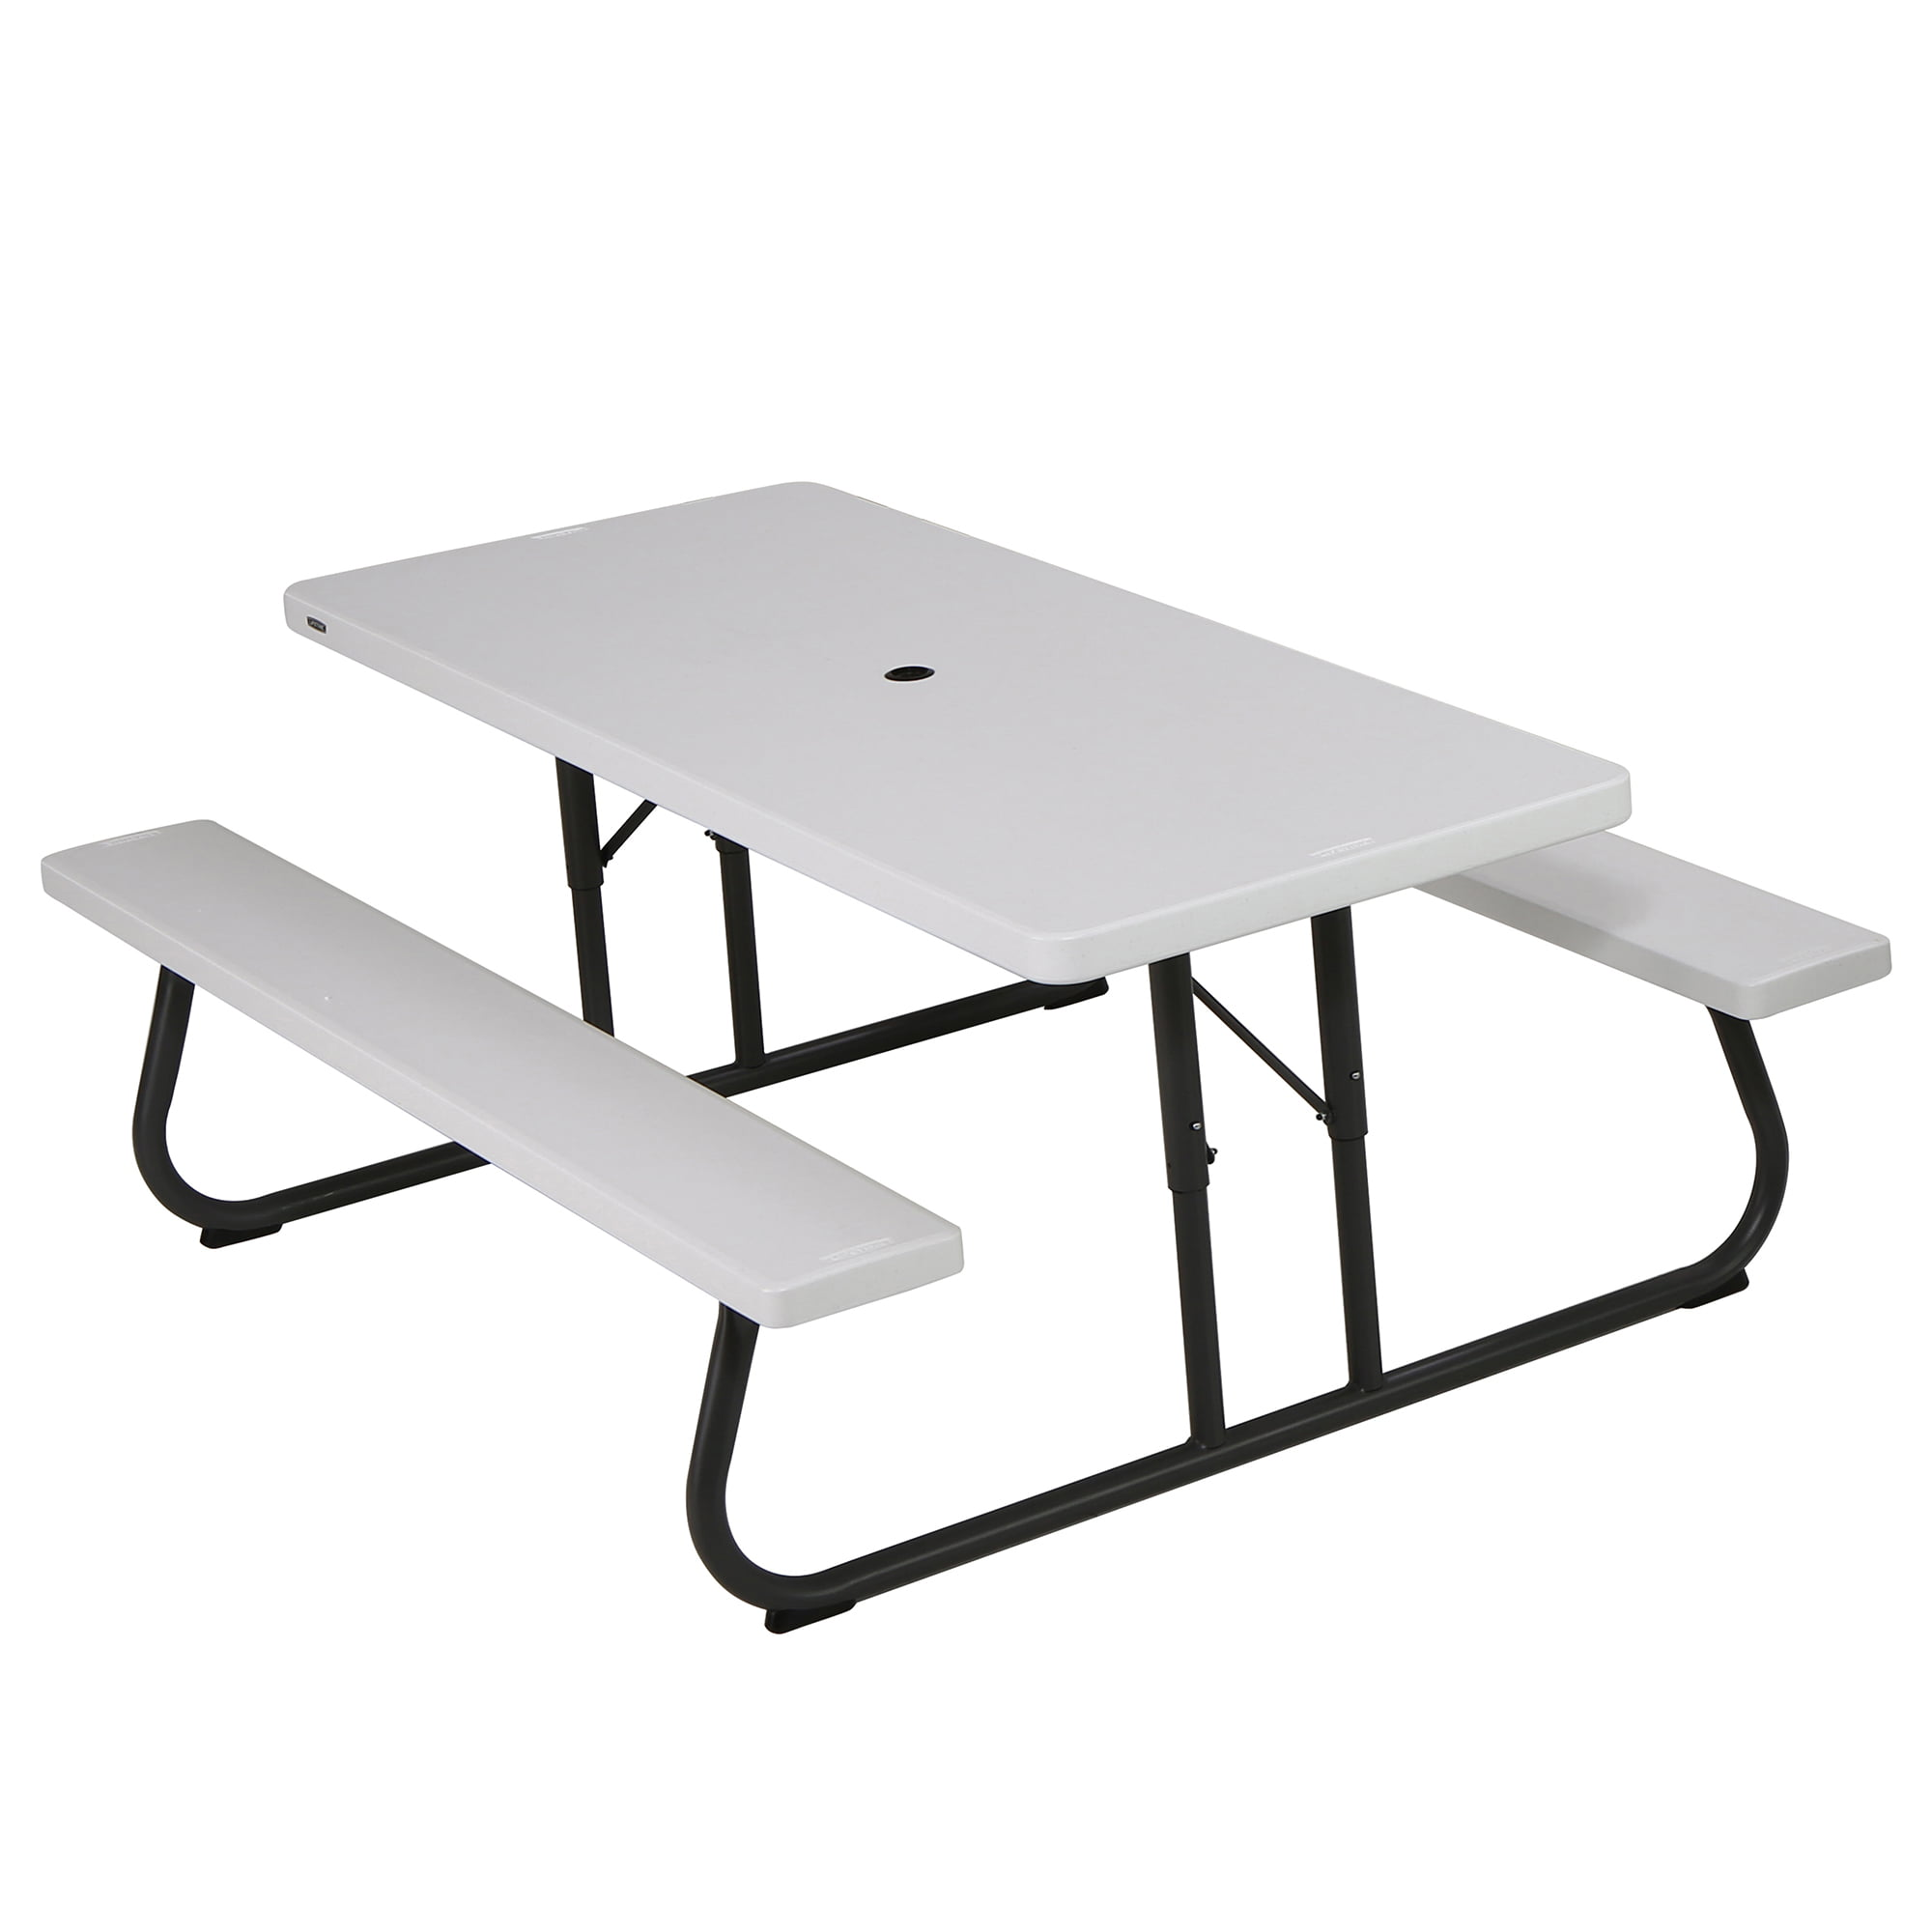 Lifetime 6 foot Picnic Table, White Granite, 80215 by Lifetime Products